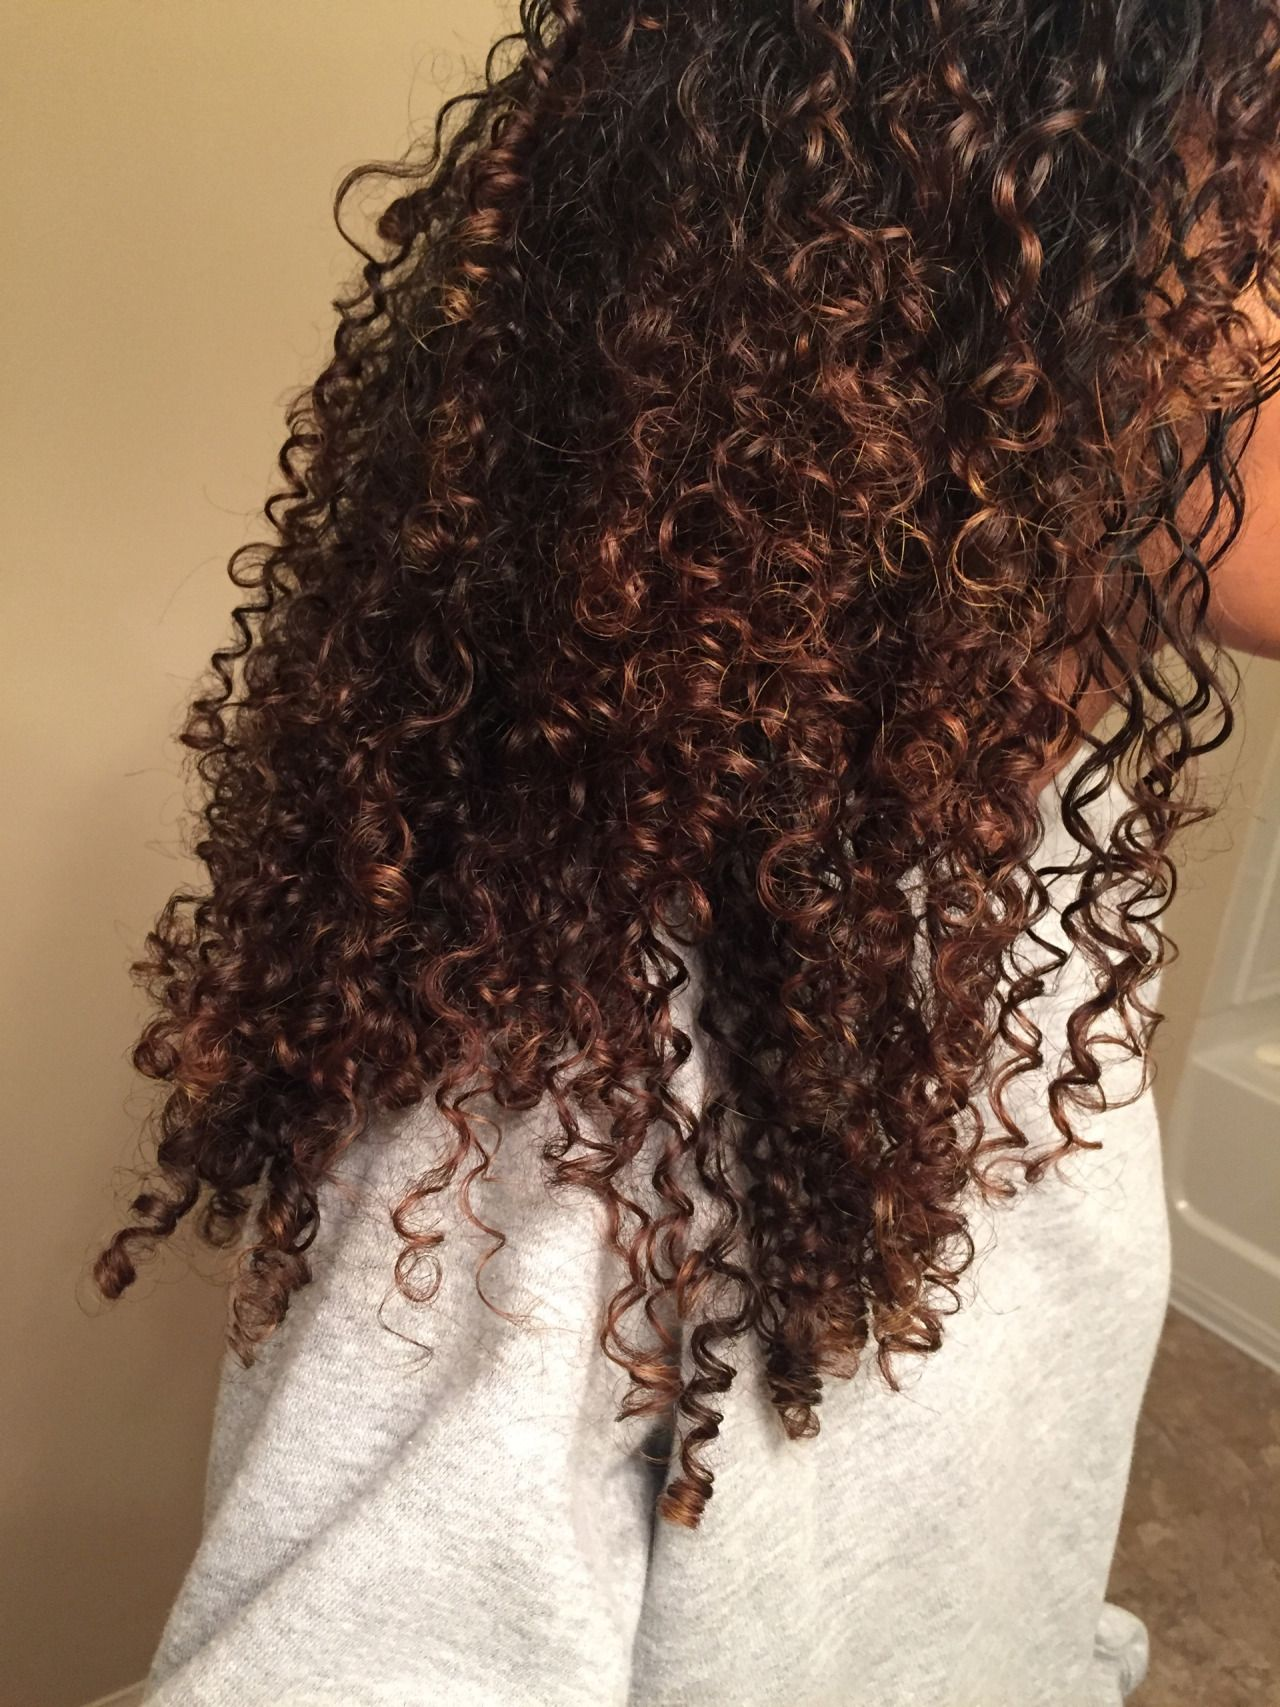 Curly Hair Of Girls Beautiful Curl Definition Curly